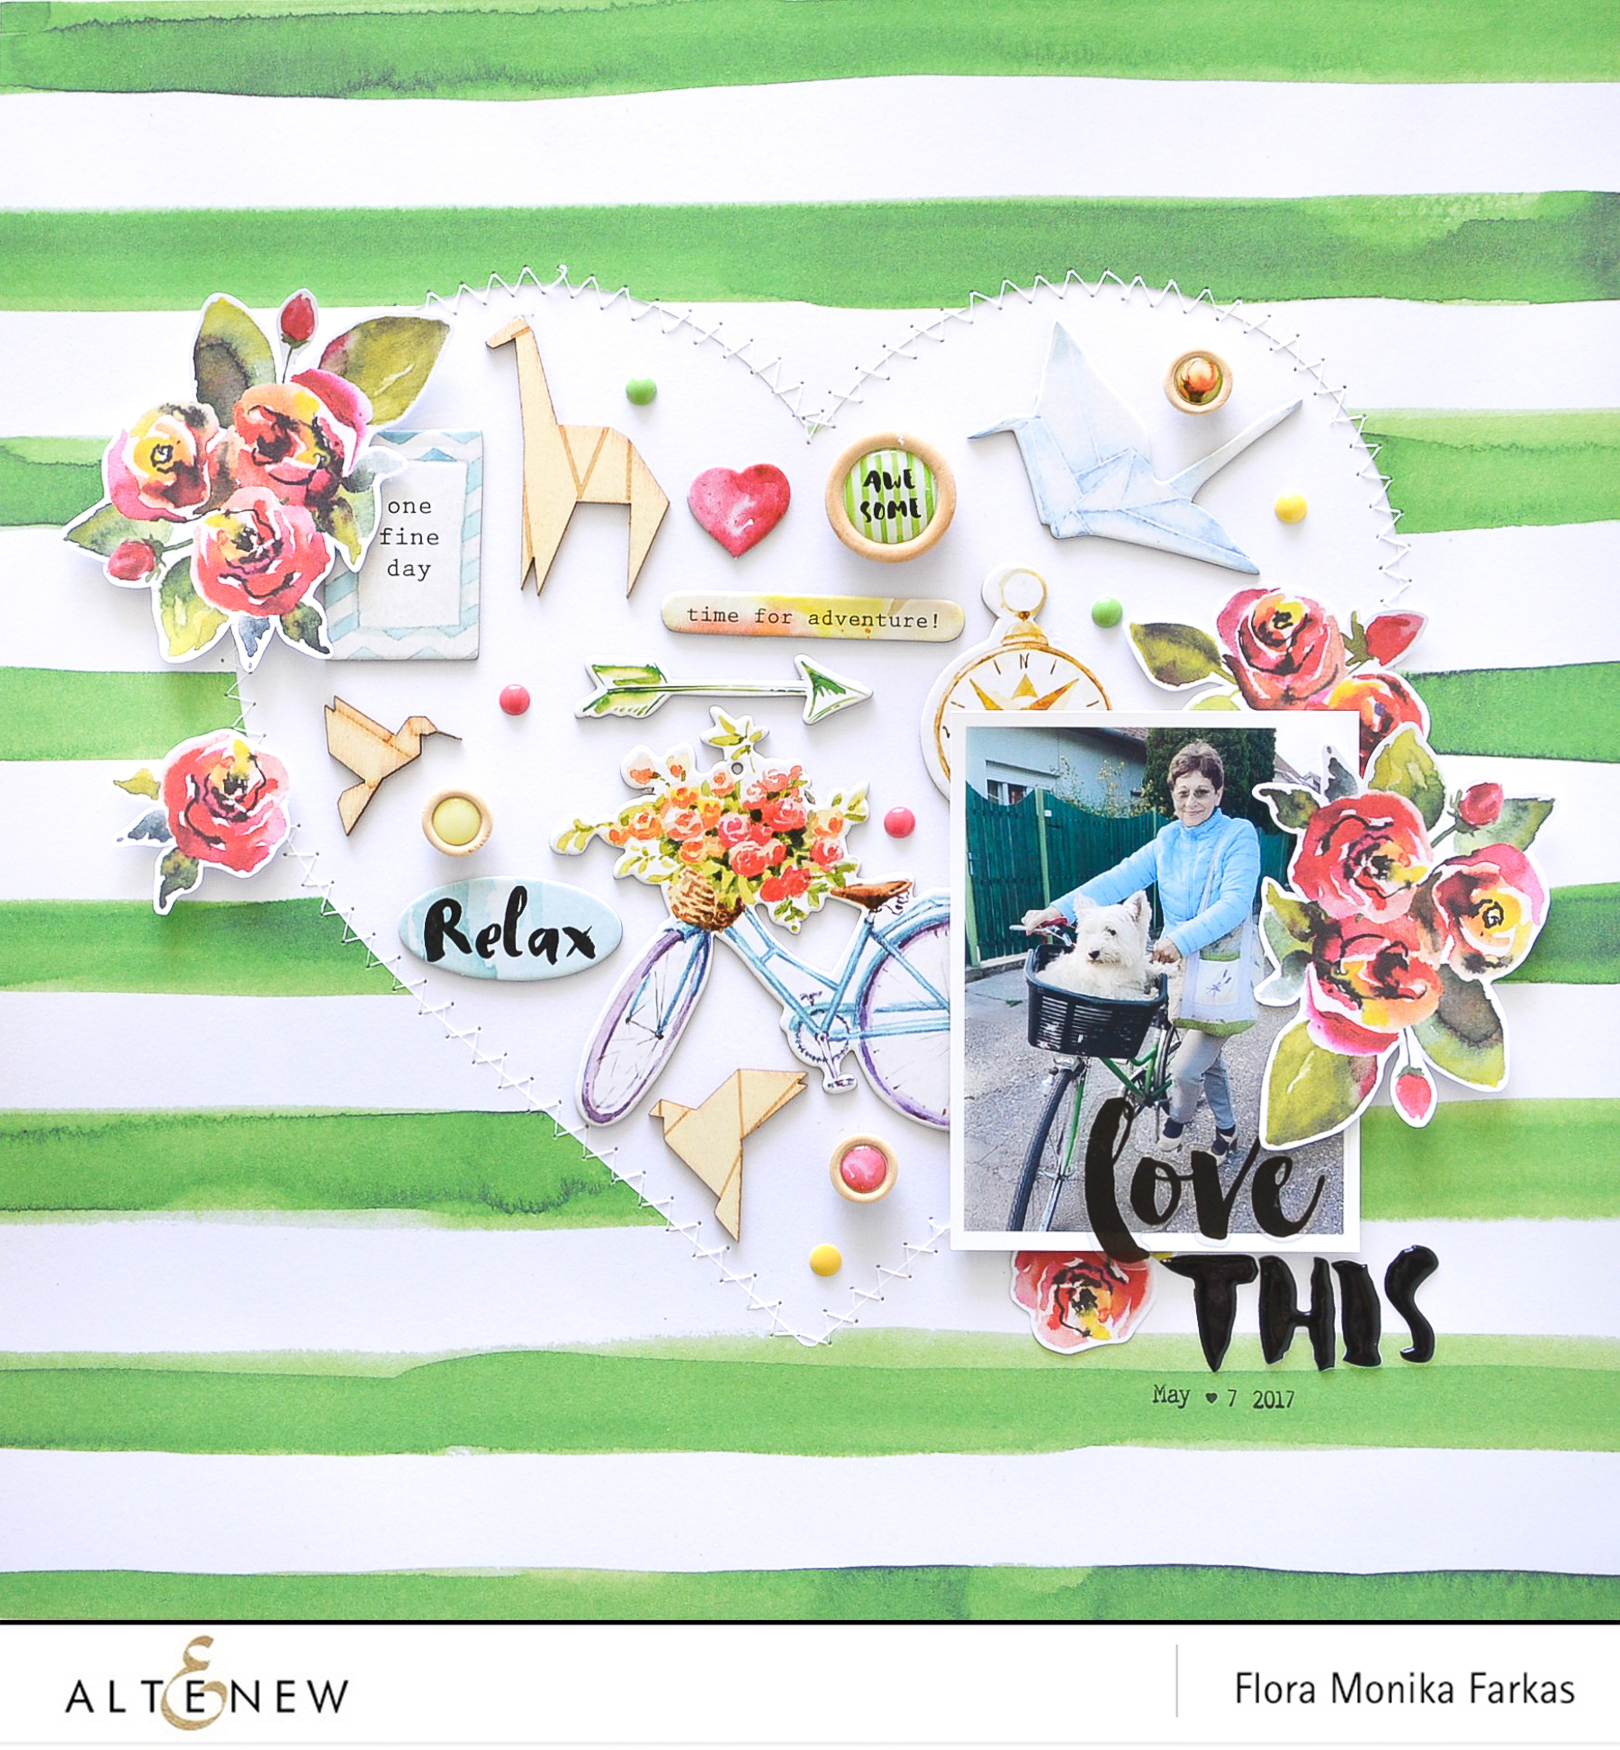 One direction scrapbook ideas -  Or Scrapbook Page You Have Still Time As The Challenge Ends On Sunday June 18th At 11 55 Pm Edt Here Is My Take One The Altenew Sketch Challenge 2